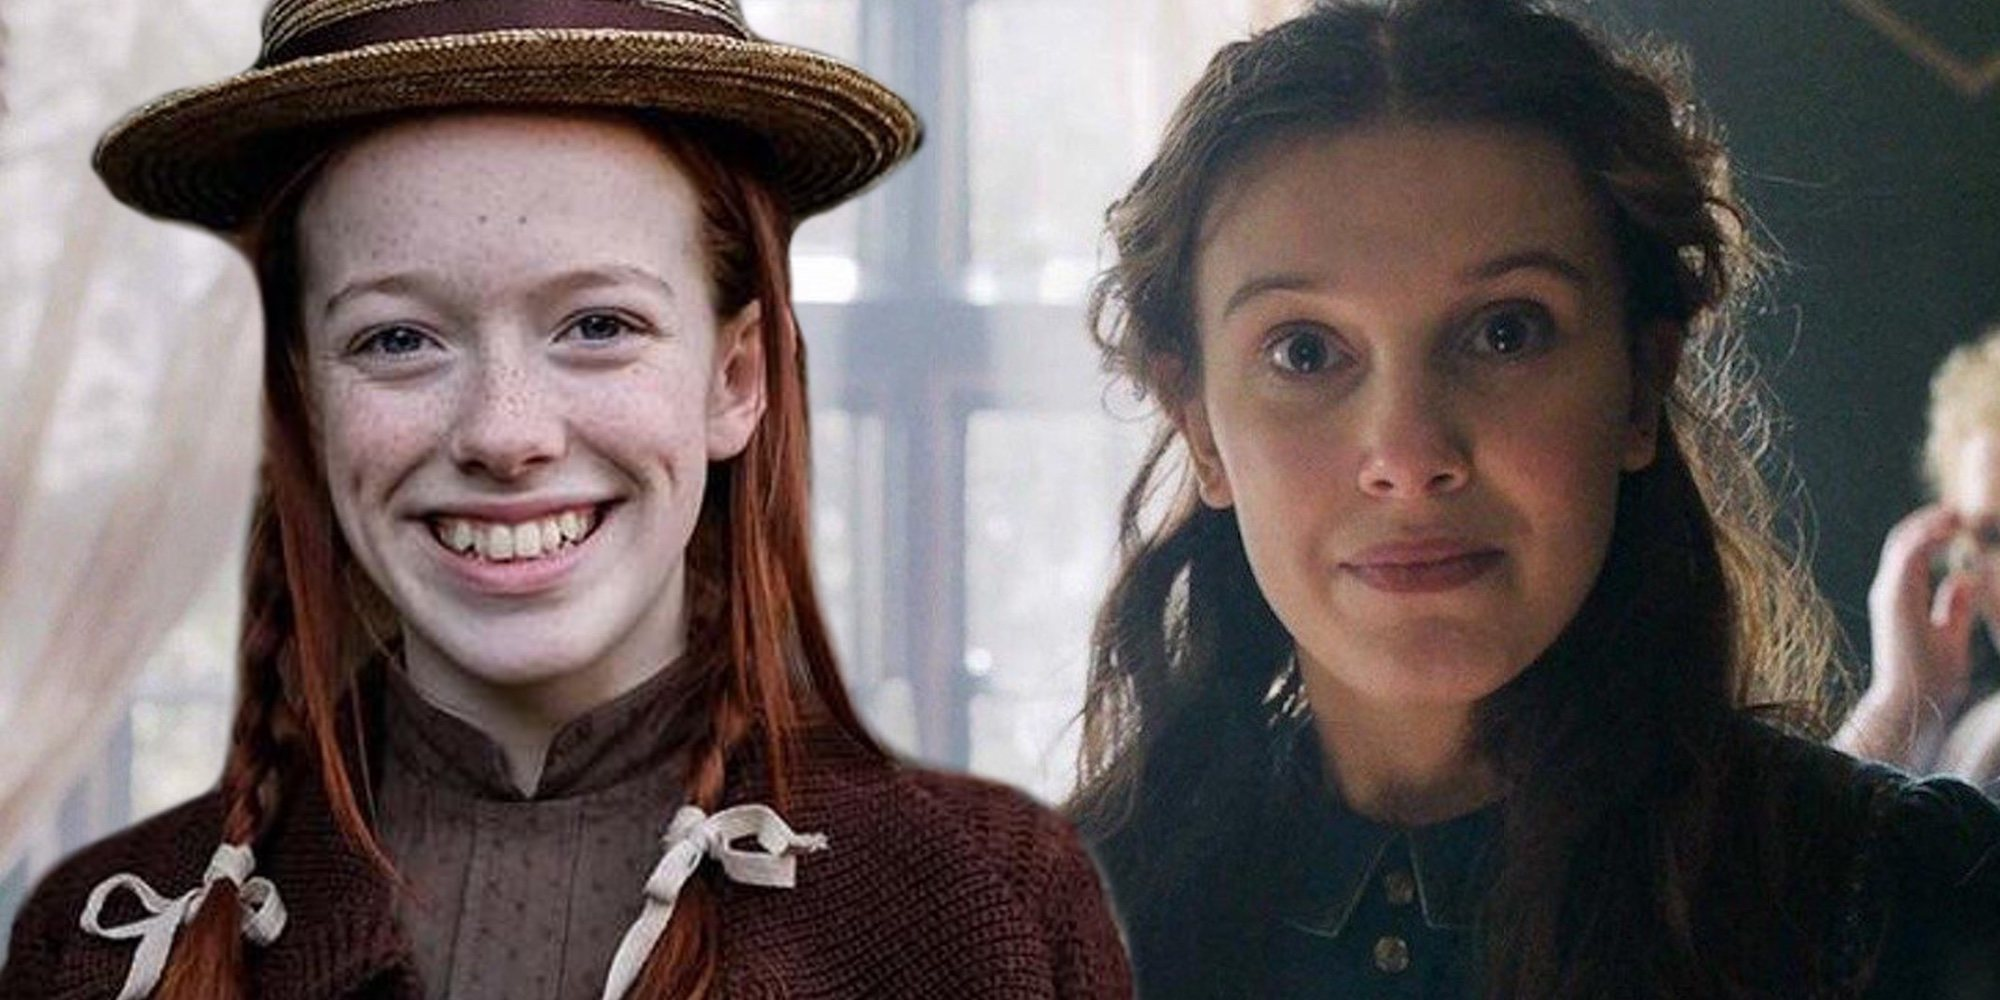 Las increíbles similitudes entre 'Enola Holmes' y 'Anne with an E'